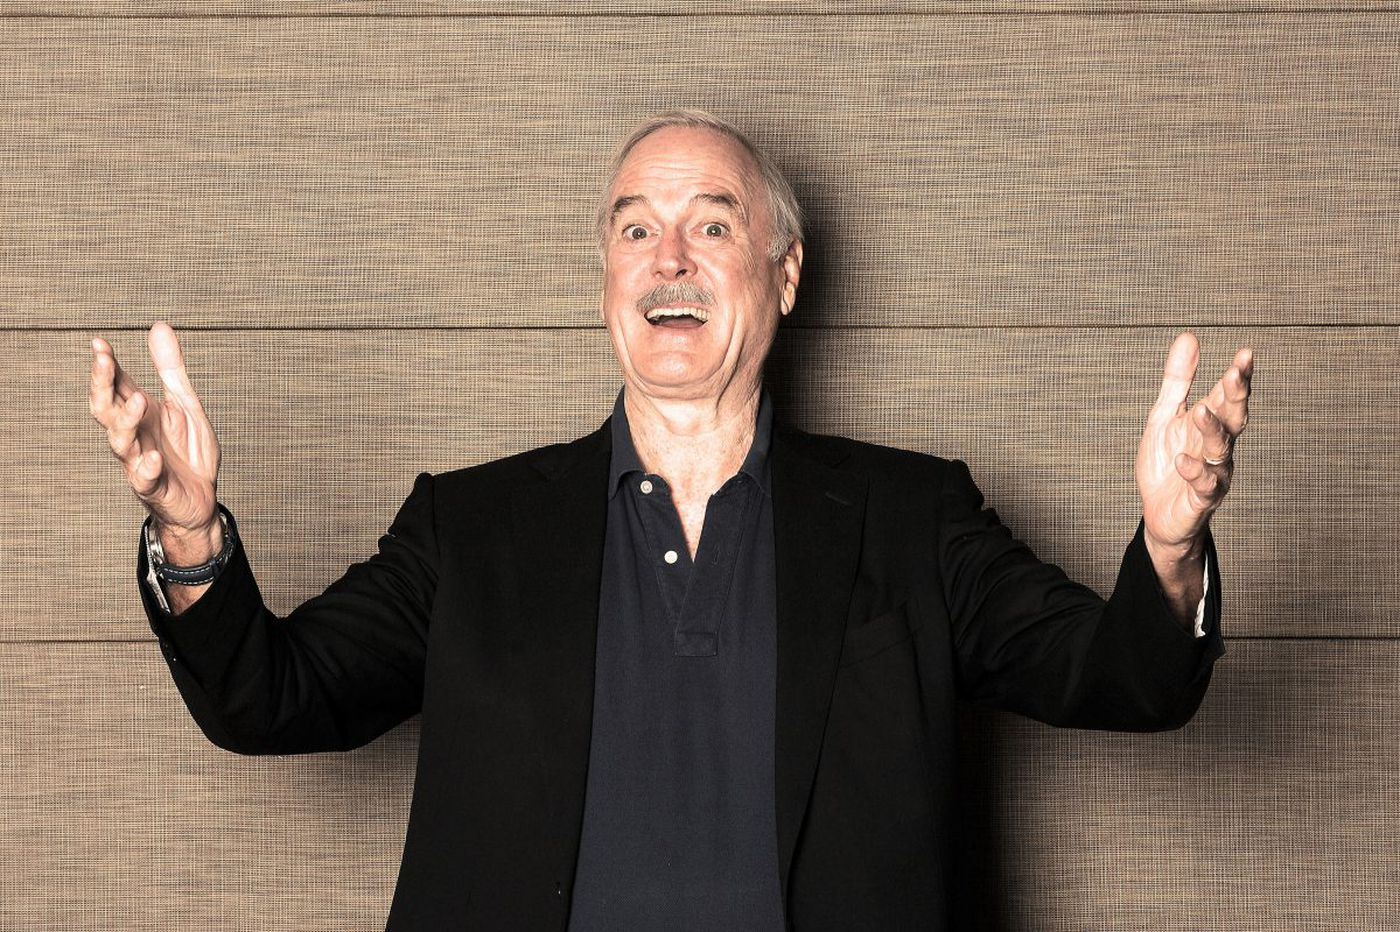 Why is John Cleese coming to Philly? He needs to pay his mortgage